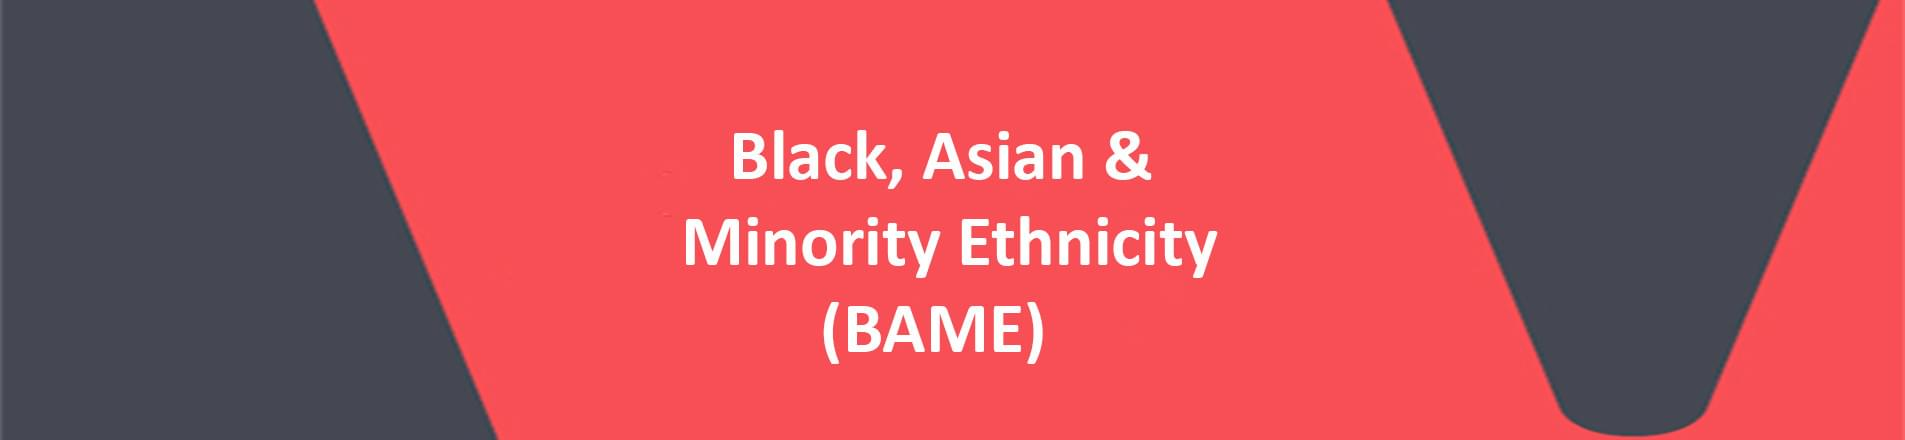 Words Black, Asian & Minority Ethnicity ( BAME) on red VERCIDA branded background